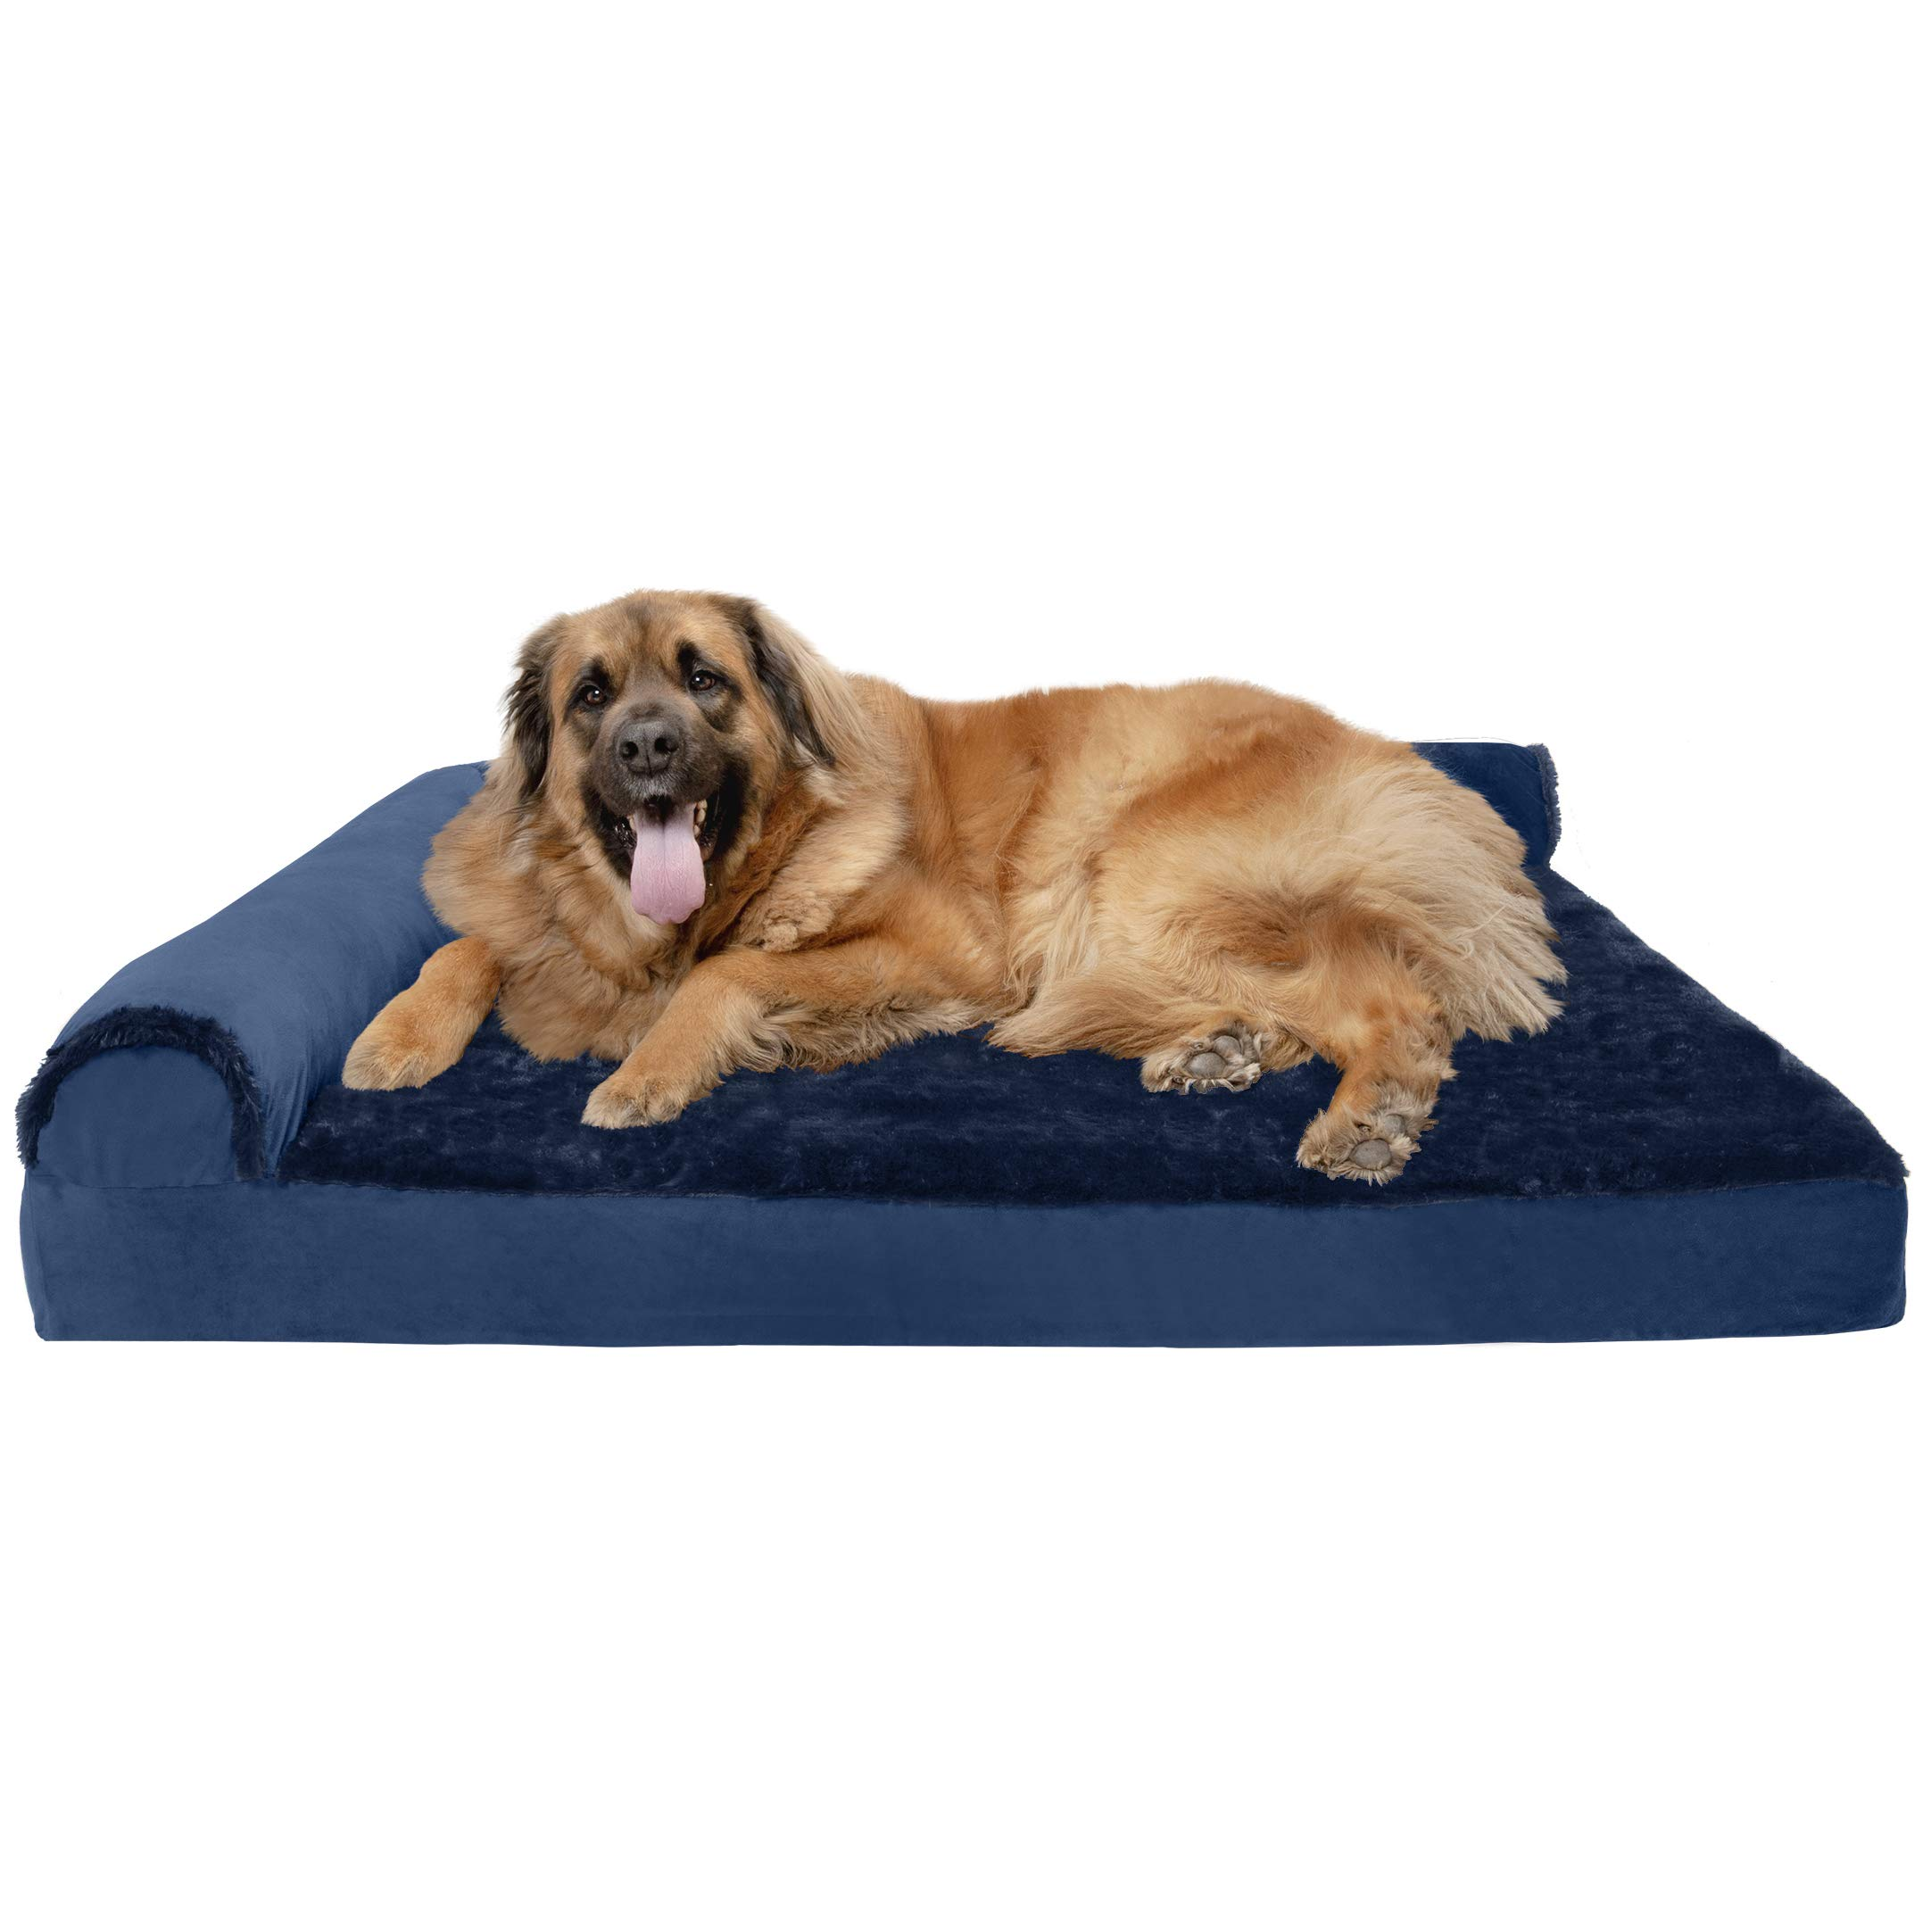 Furhaven Pet Dog Bed | Deluxe Orthopedic Plush Faux Fur & Velvet L Shaped Chaise Lounge Living Room Corner Couch Pet Bed w/ Removable Cover for Dogs & Cats, Deep Sapphire, Jumbo Plus by Furhaven